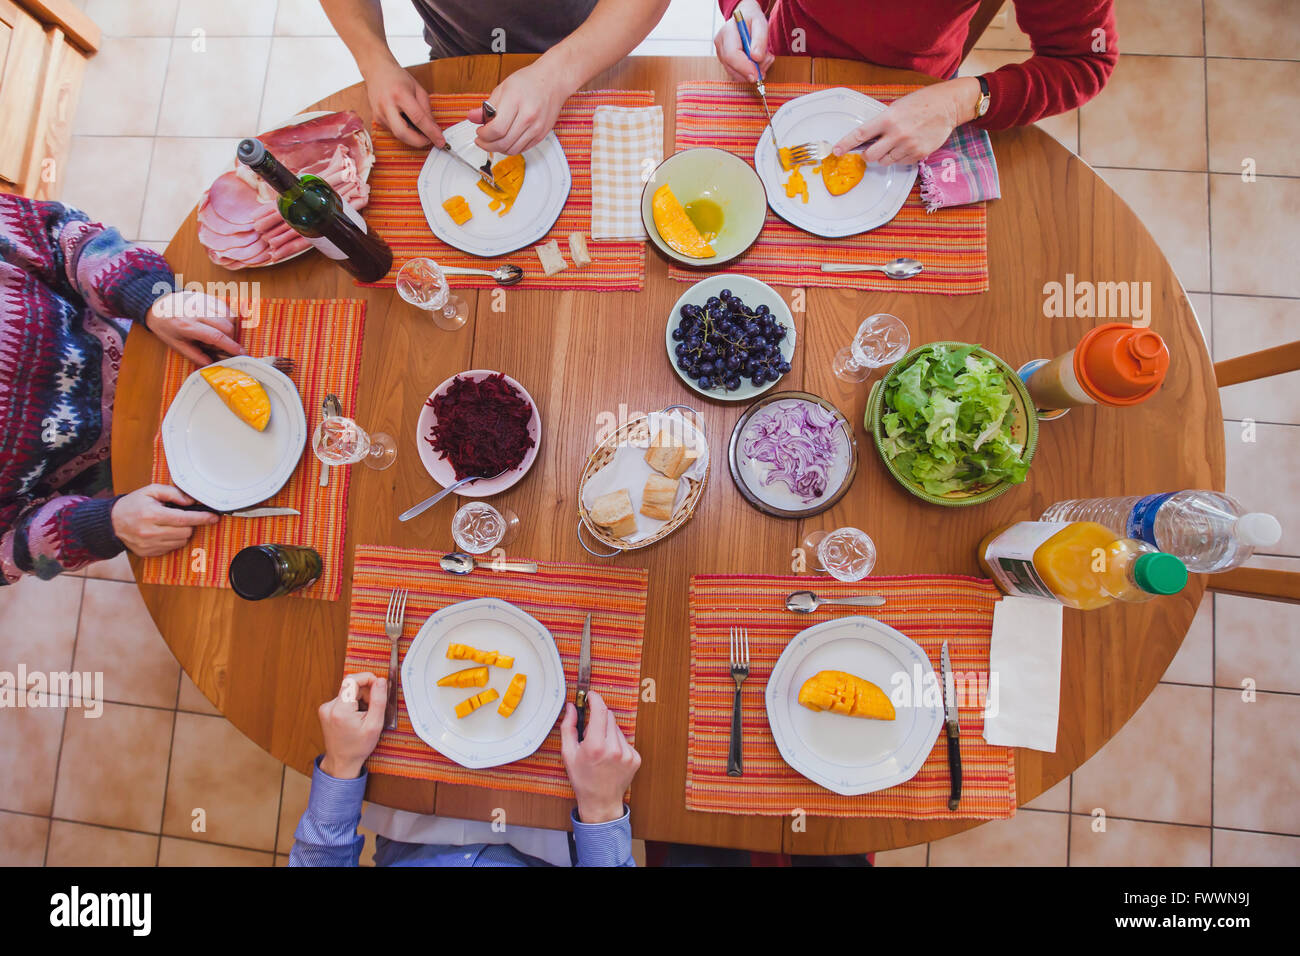 family at lunch eating starters, appetizers, top view of the table with food - Stock Image